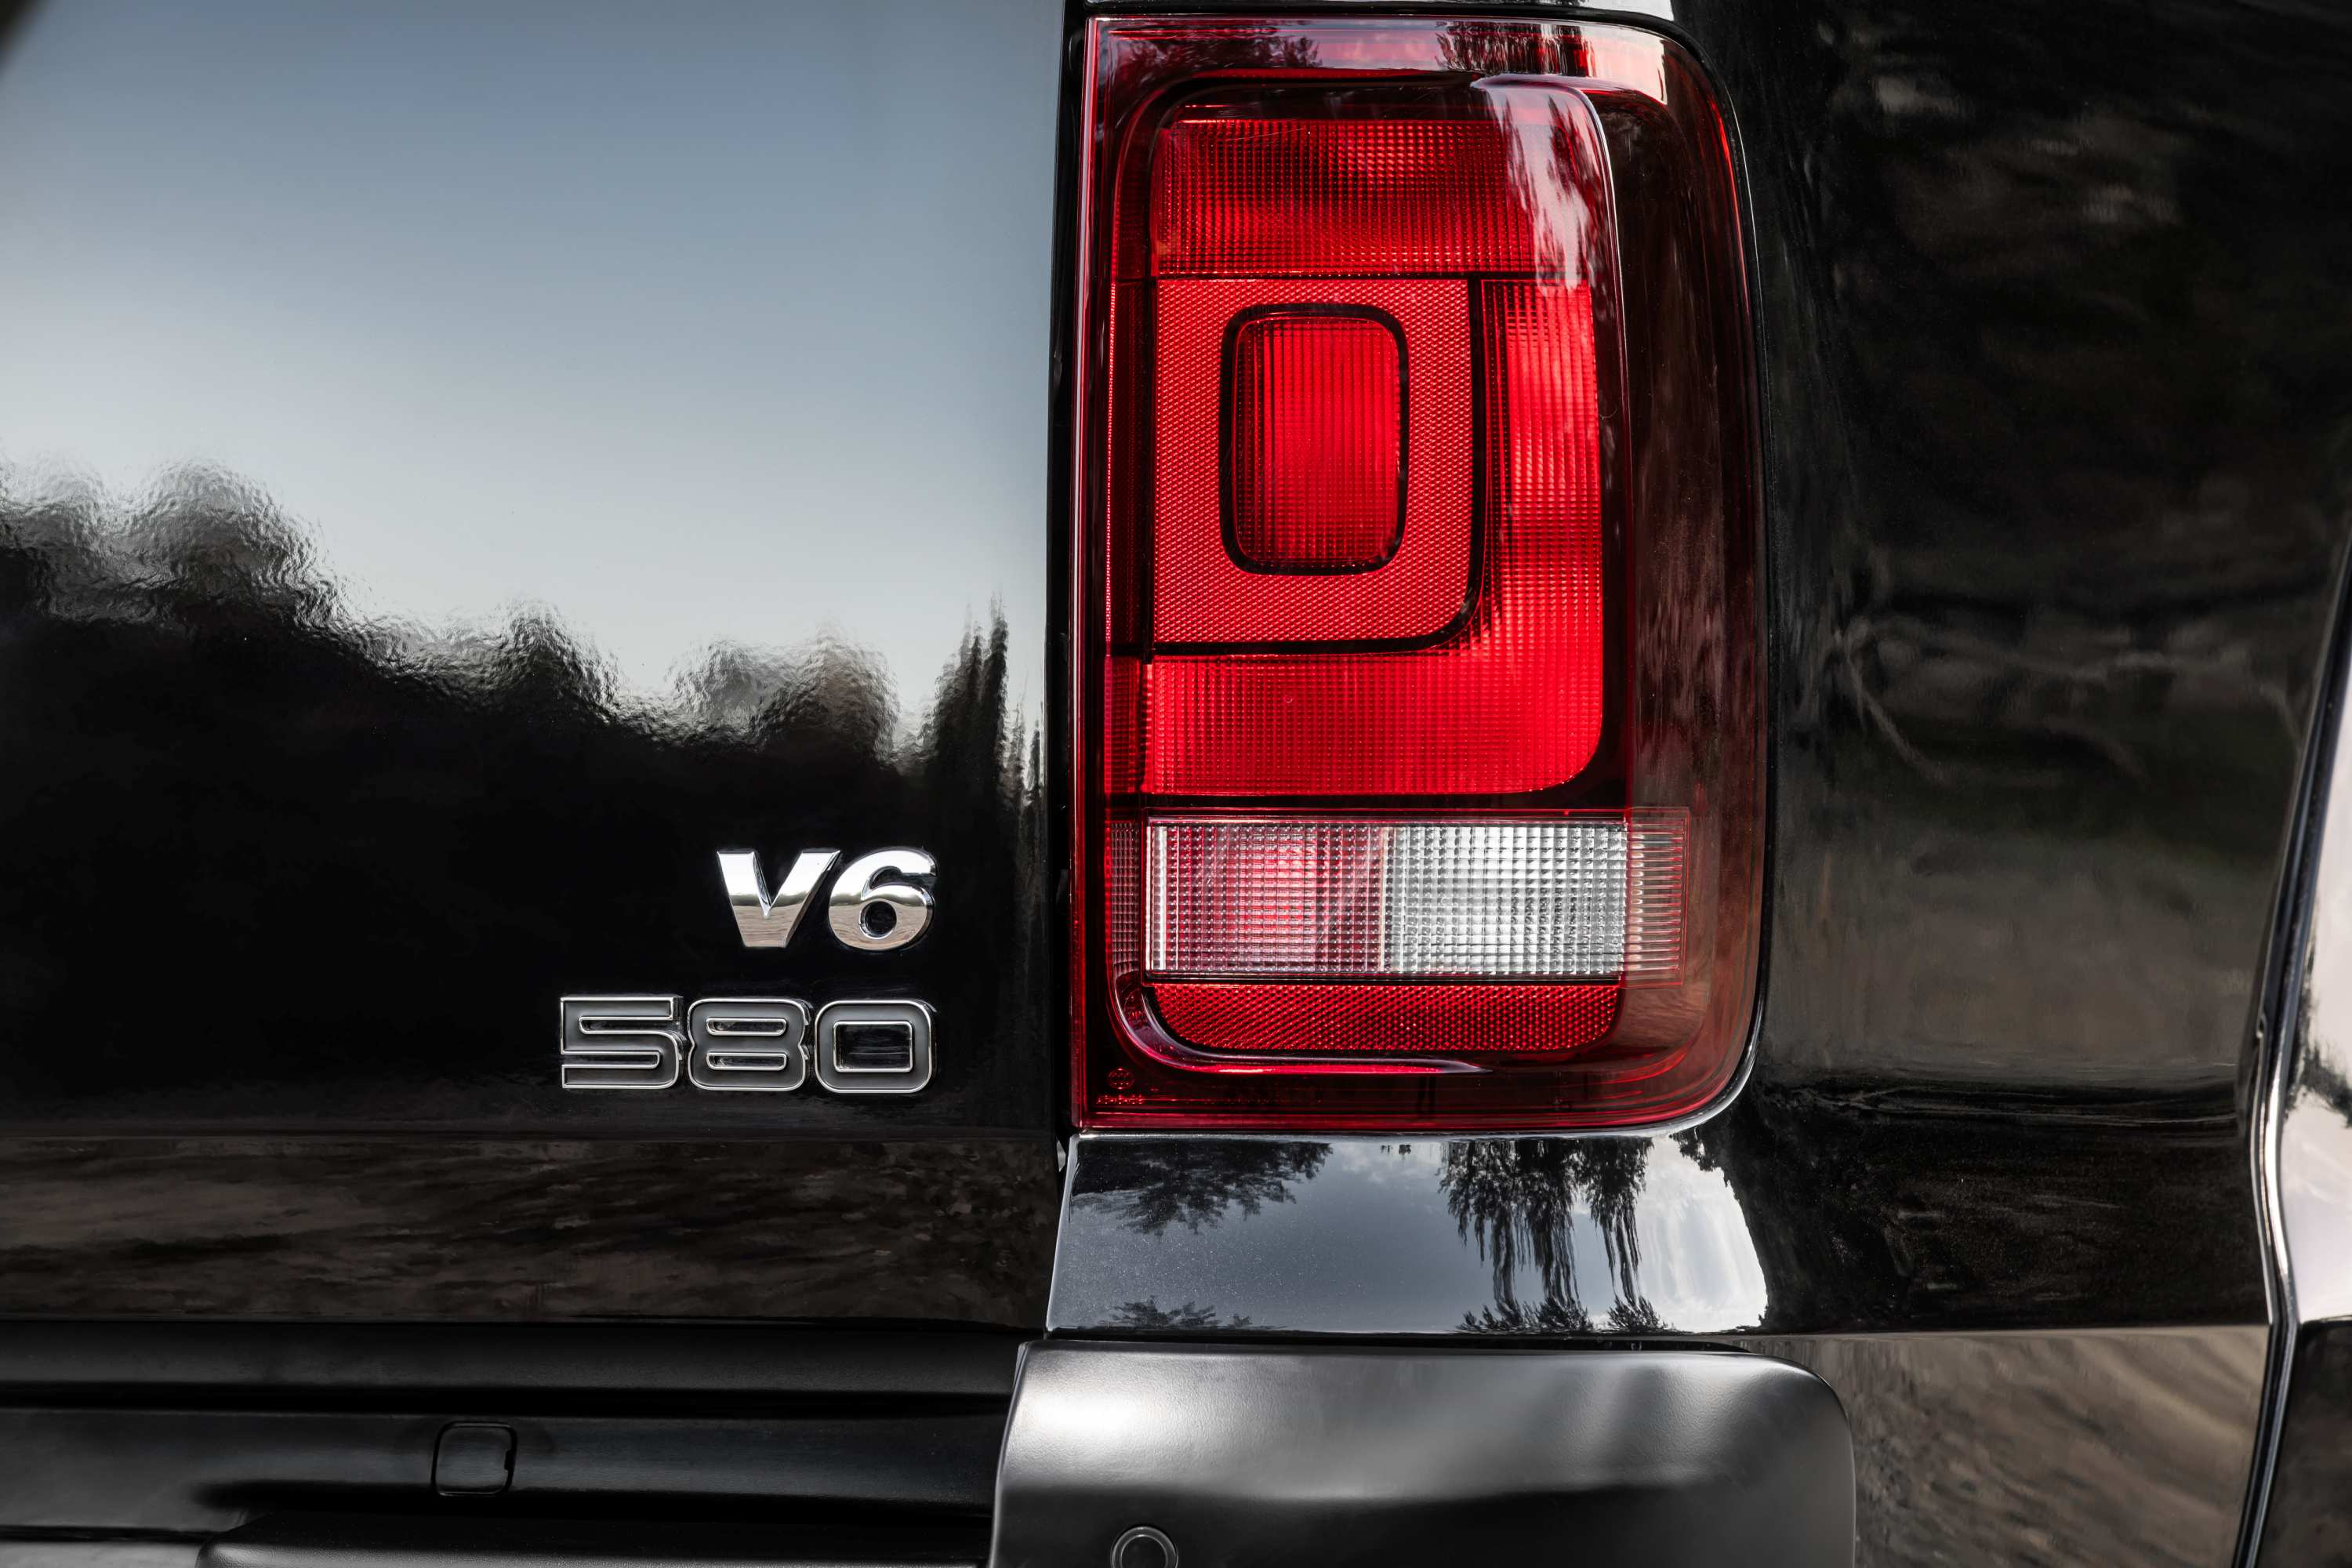 Volkswagen Amarok V6 580S: unlimited style, in limited numbers.